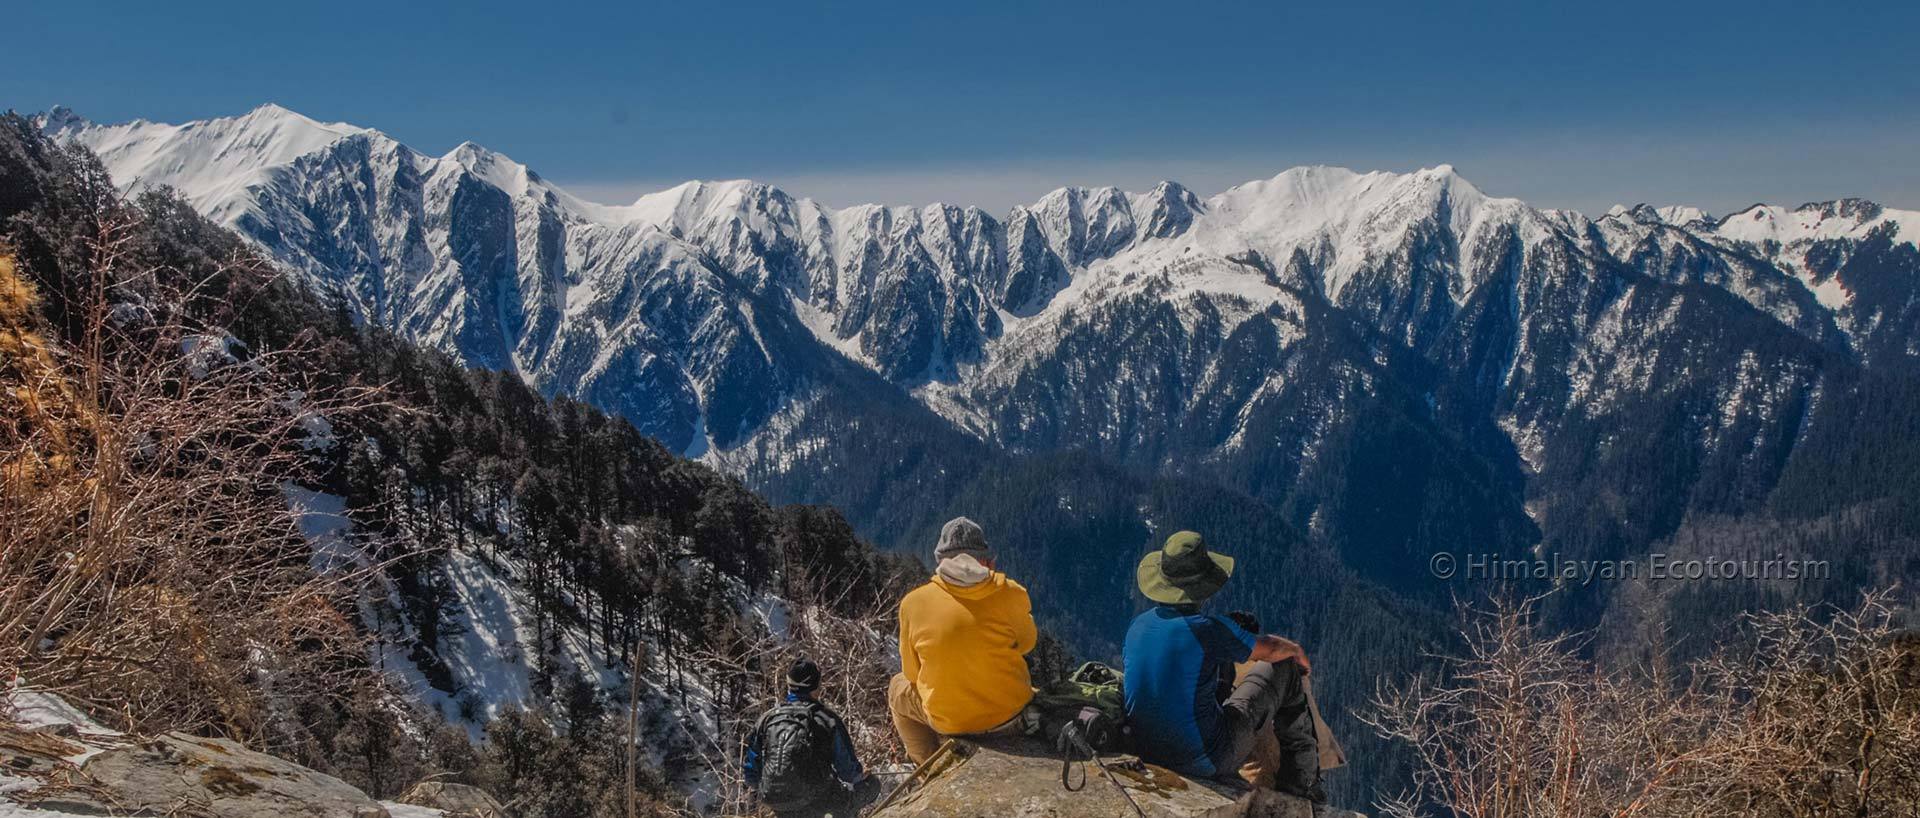 Day hikes in the Great Himalayan National Park